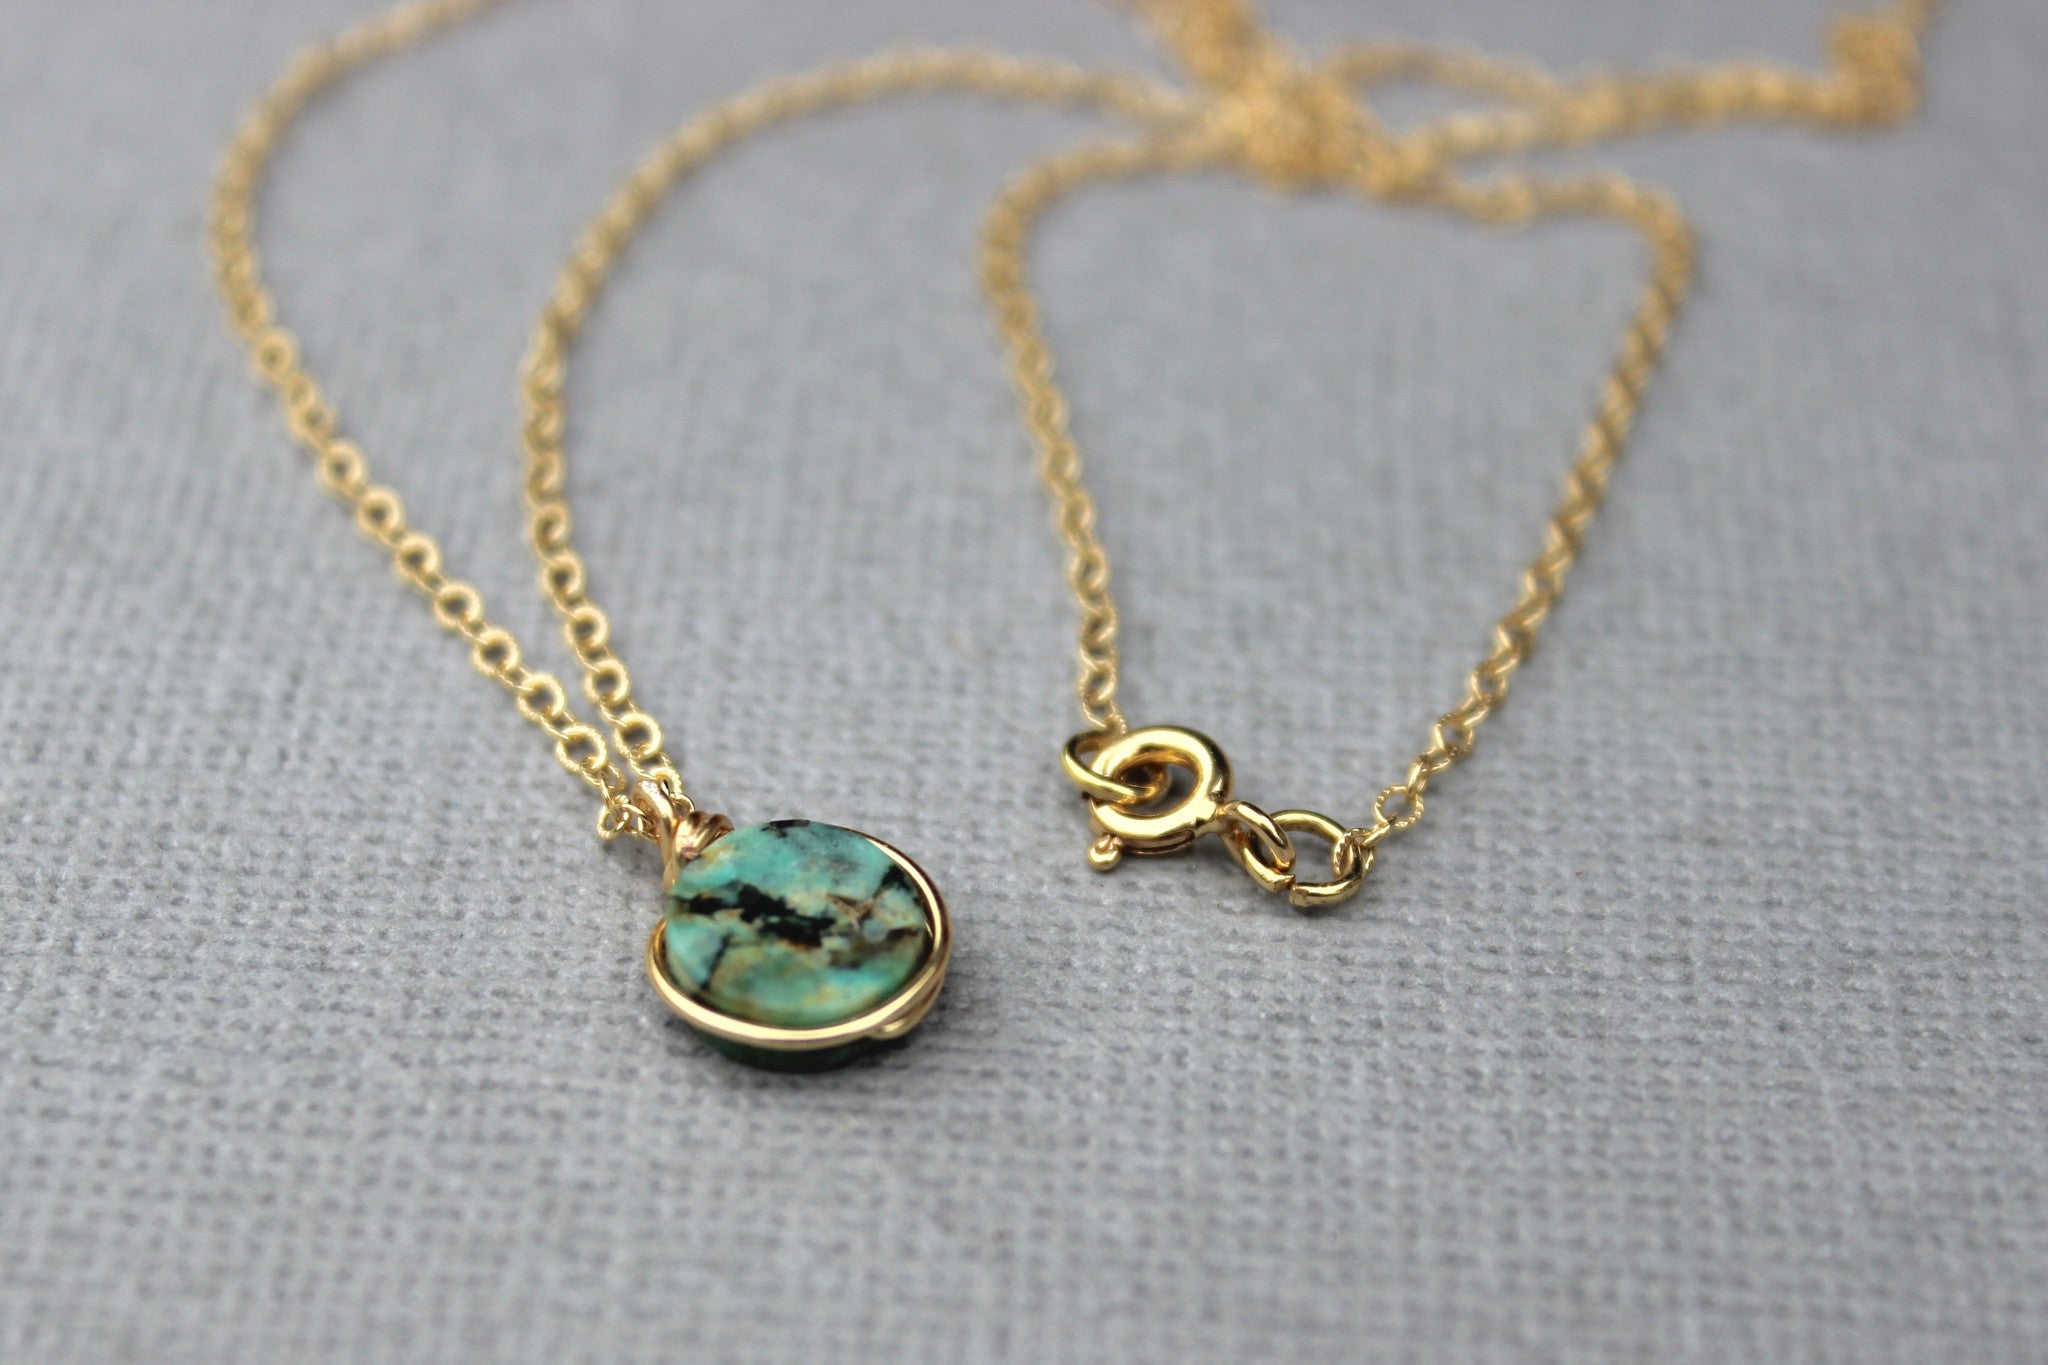 Turquoise Pendant Necklace - Designed By Lei